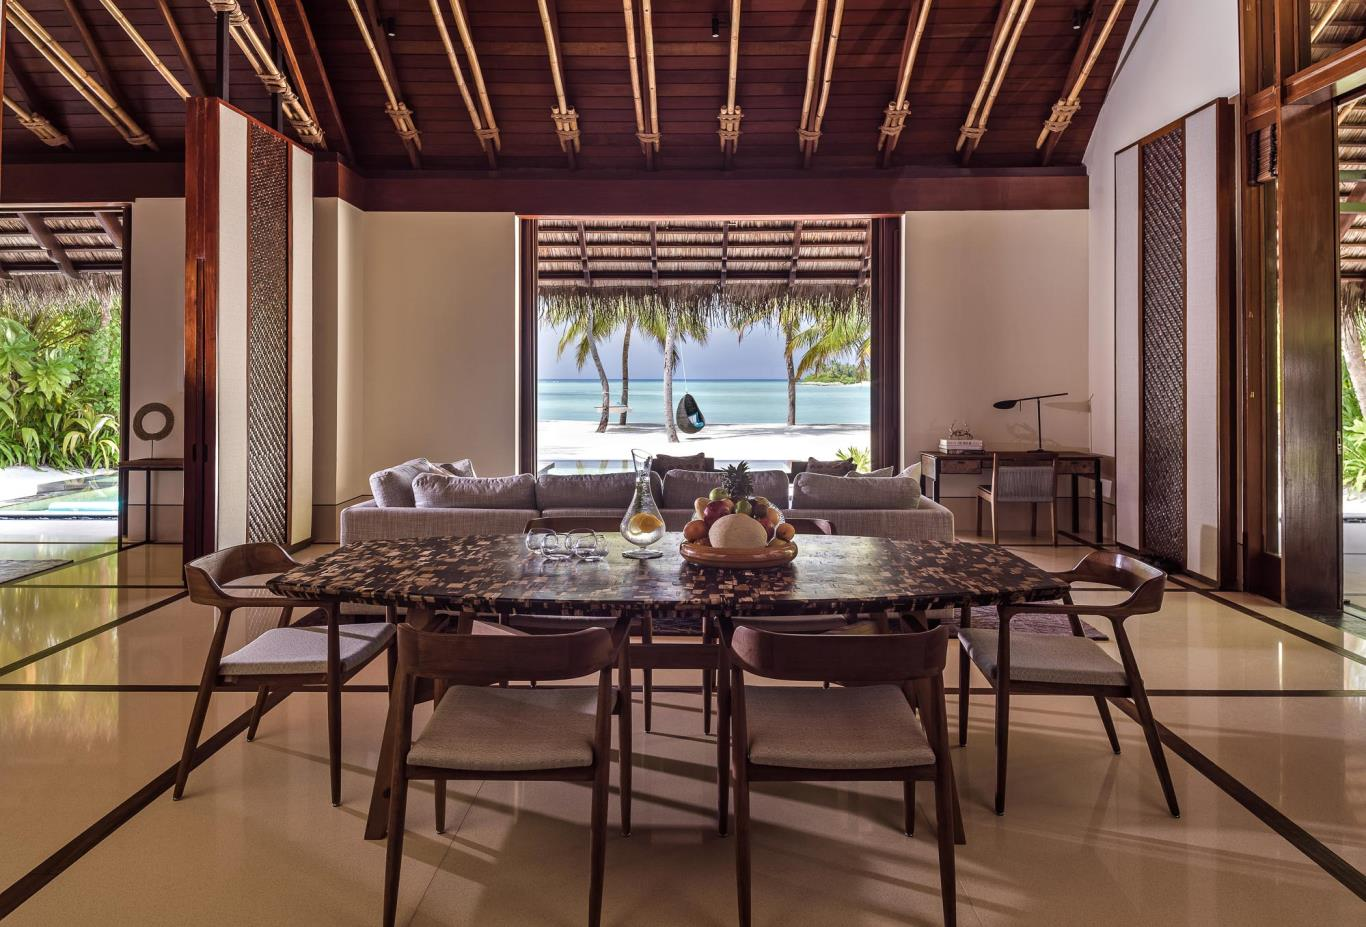 Grand Beach Villa dining area